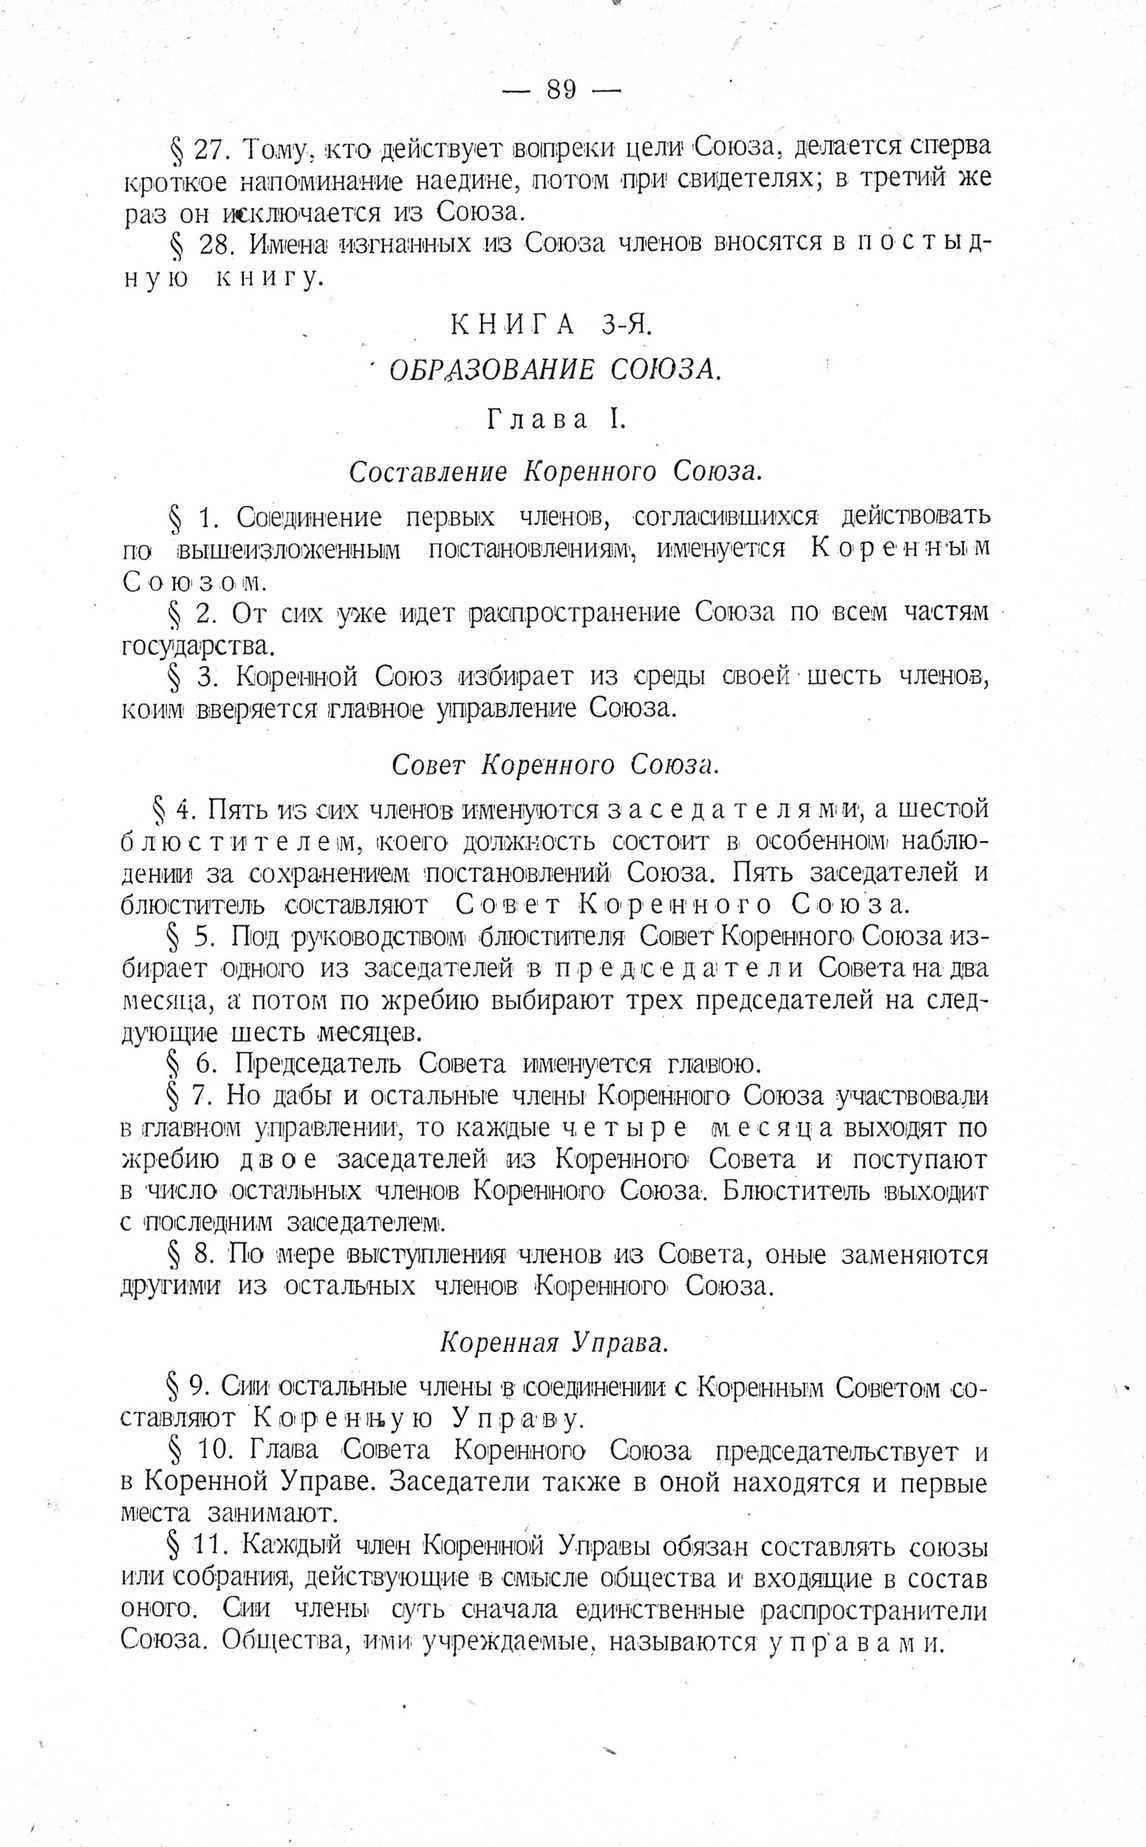 http://elib.shpl.ru/pages/625672/zooms/7